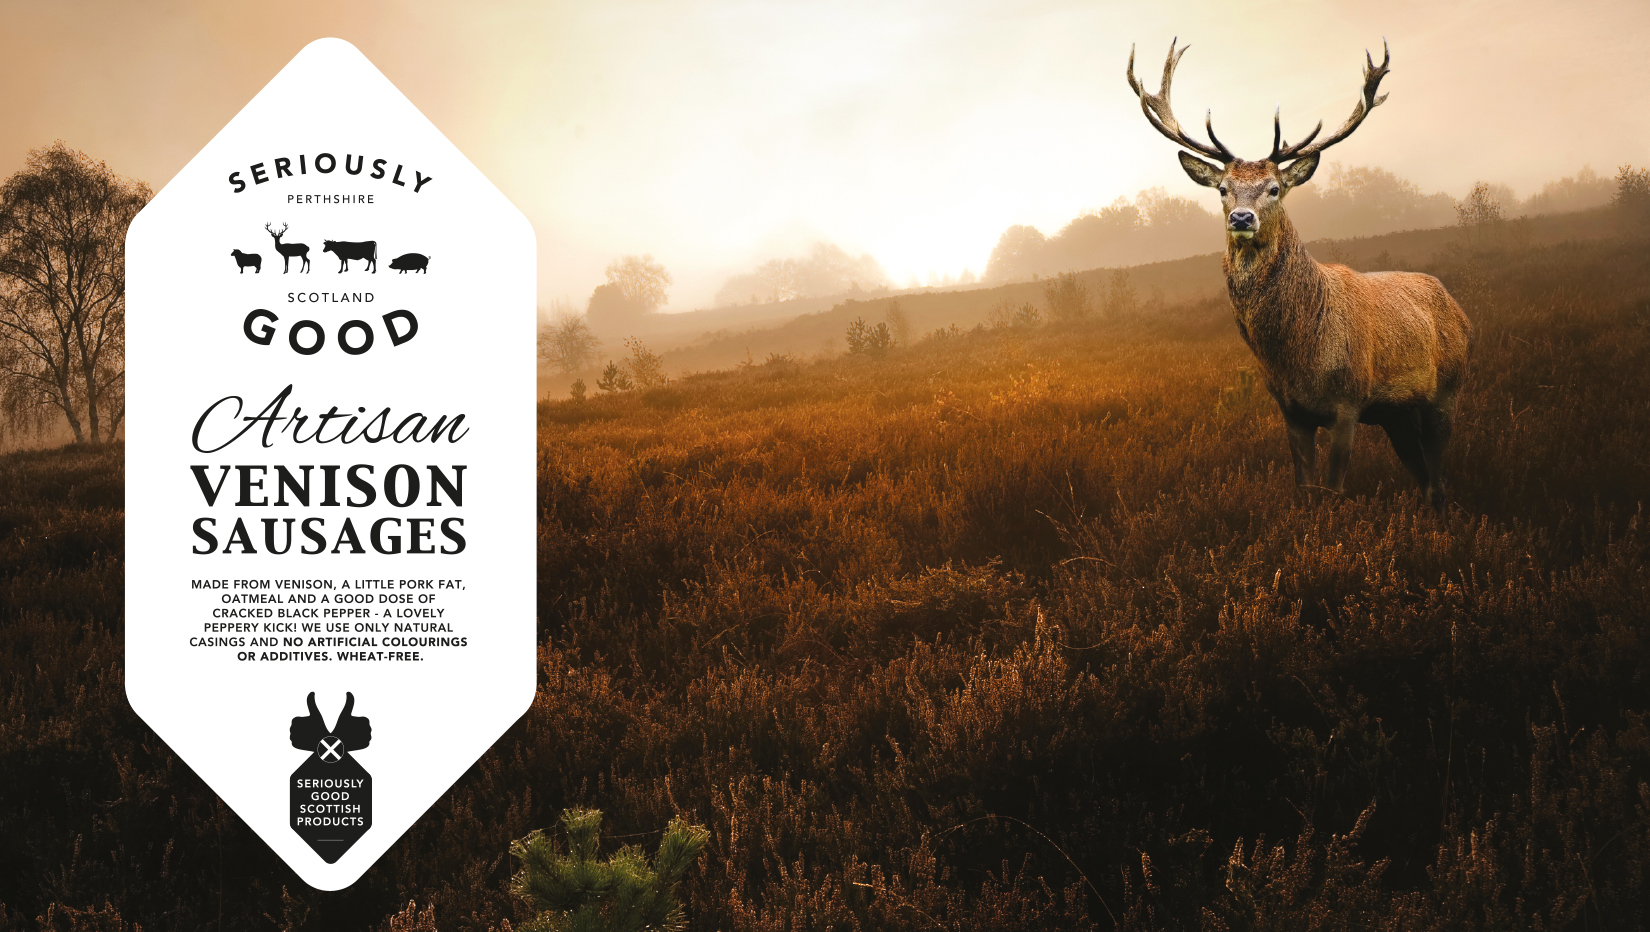 Seriously Good Venison Branding